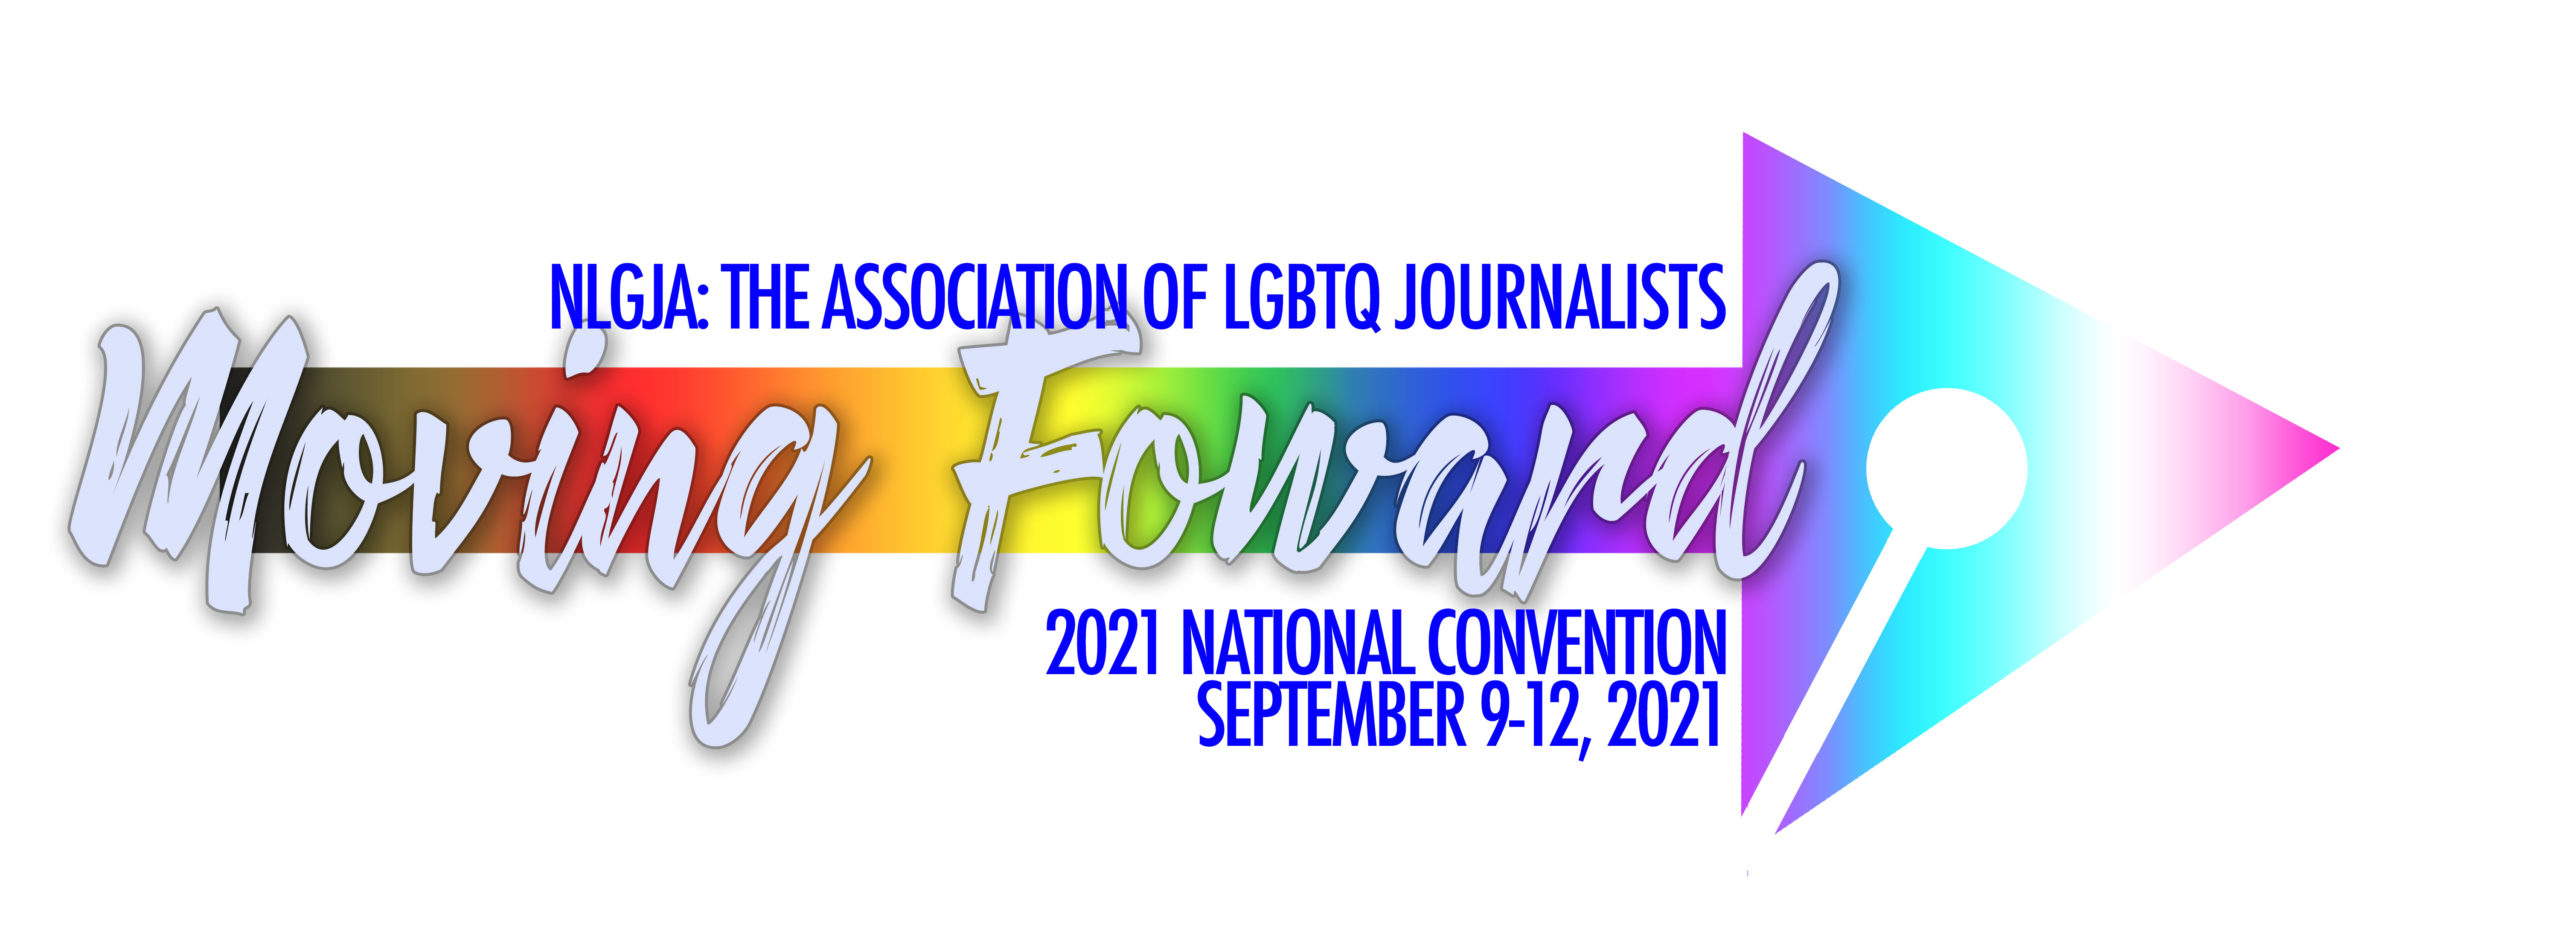 NLGJA: The Association of LGBTQ Journalists 2021 National Convention